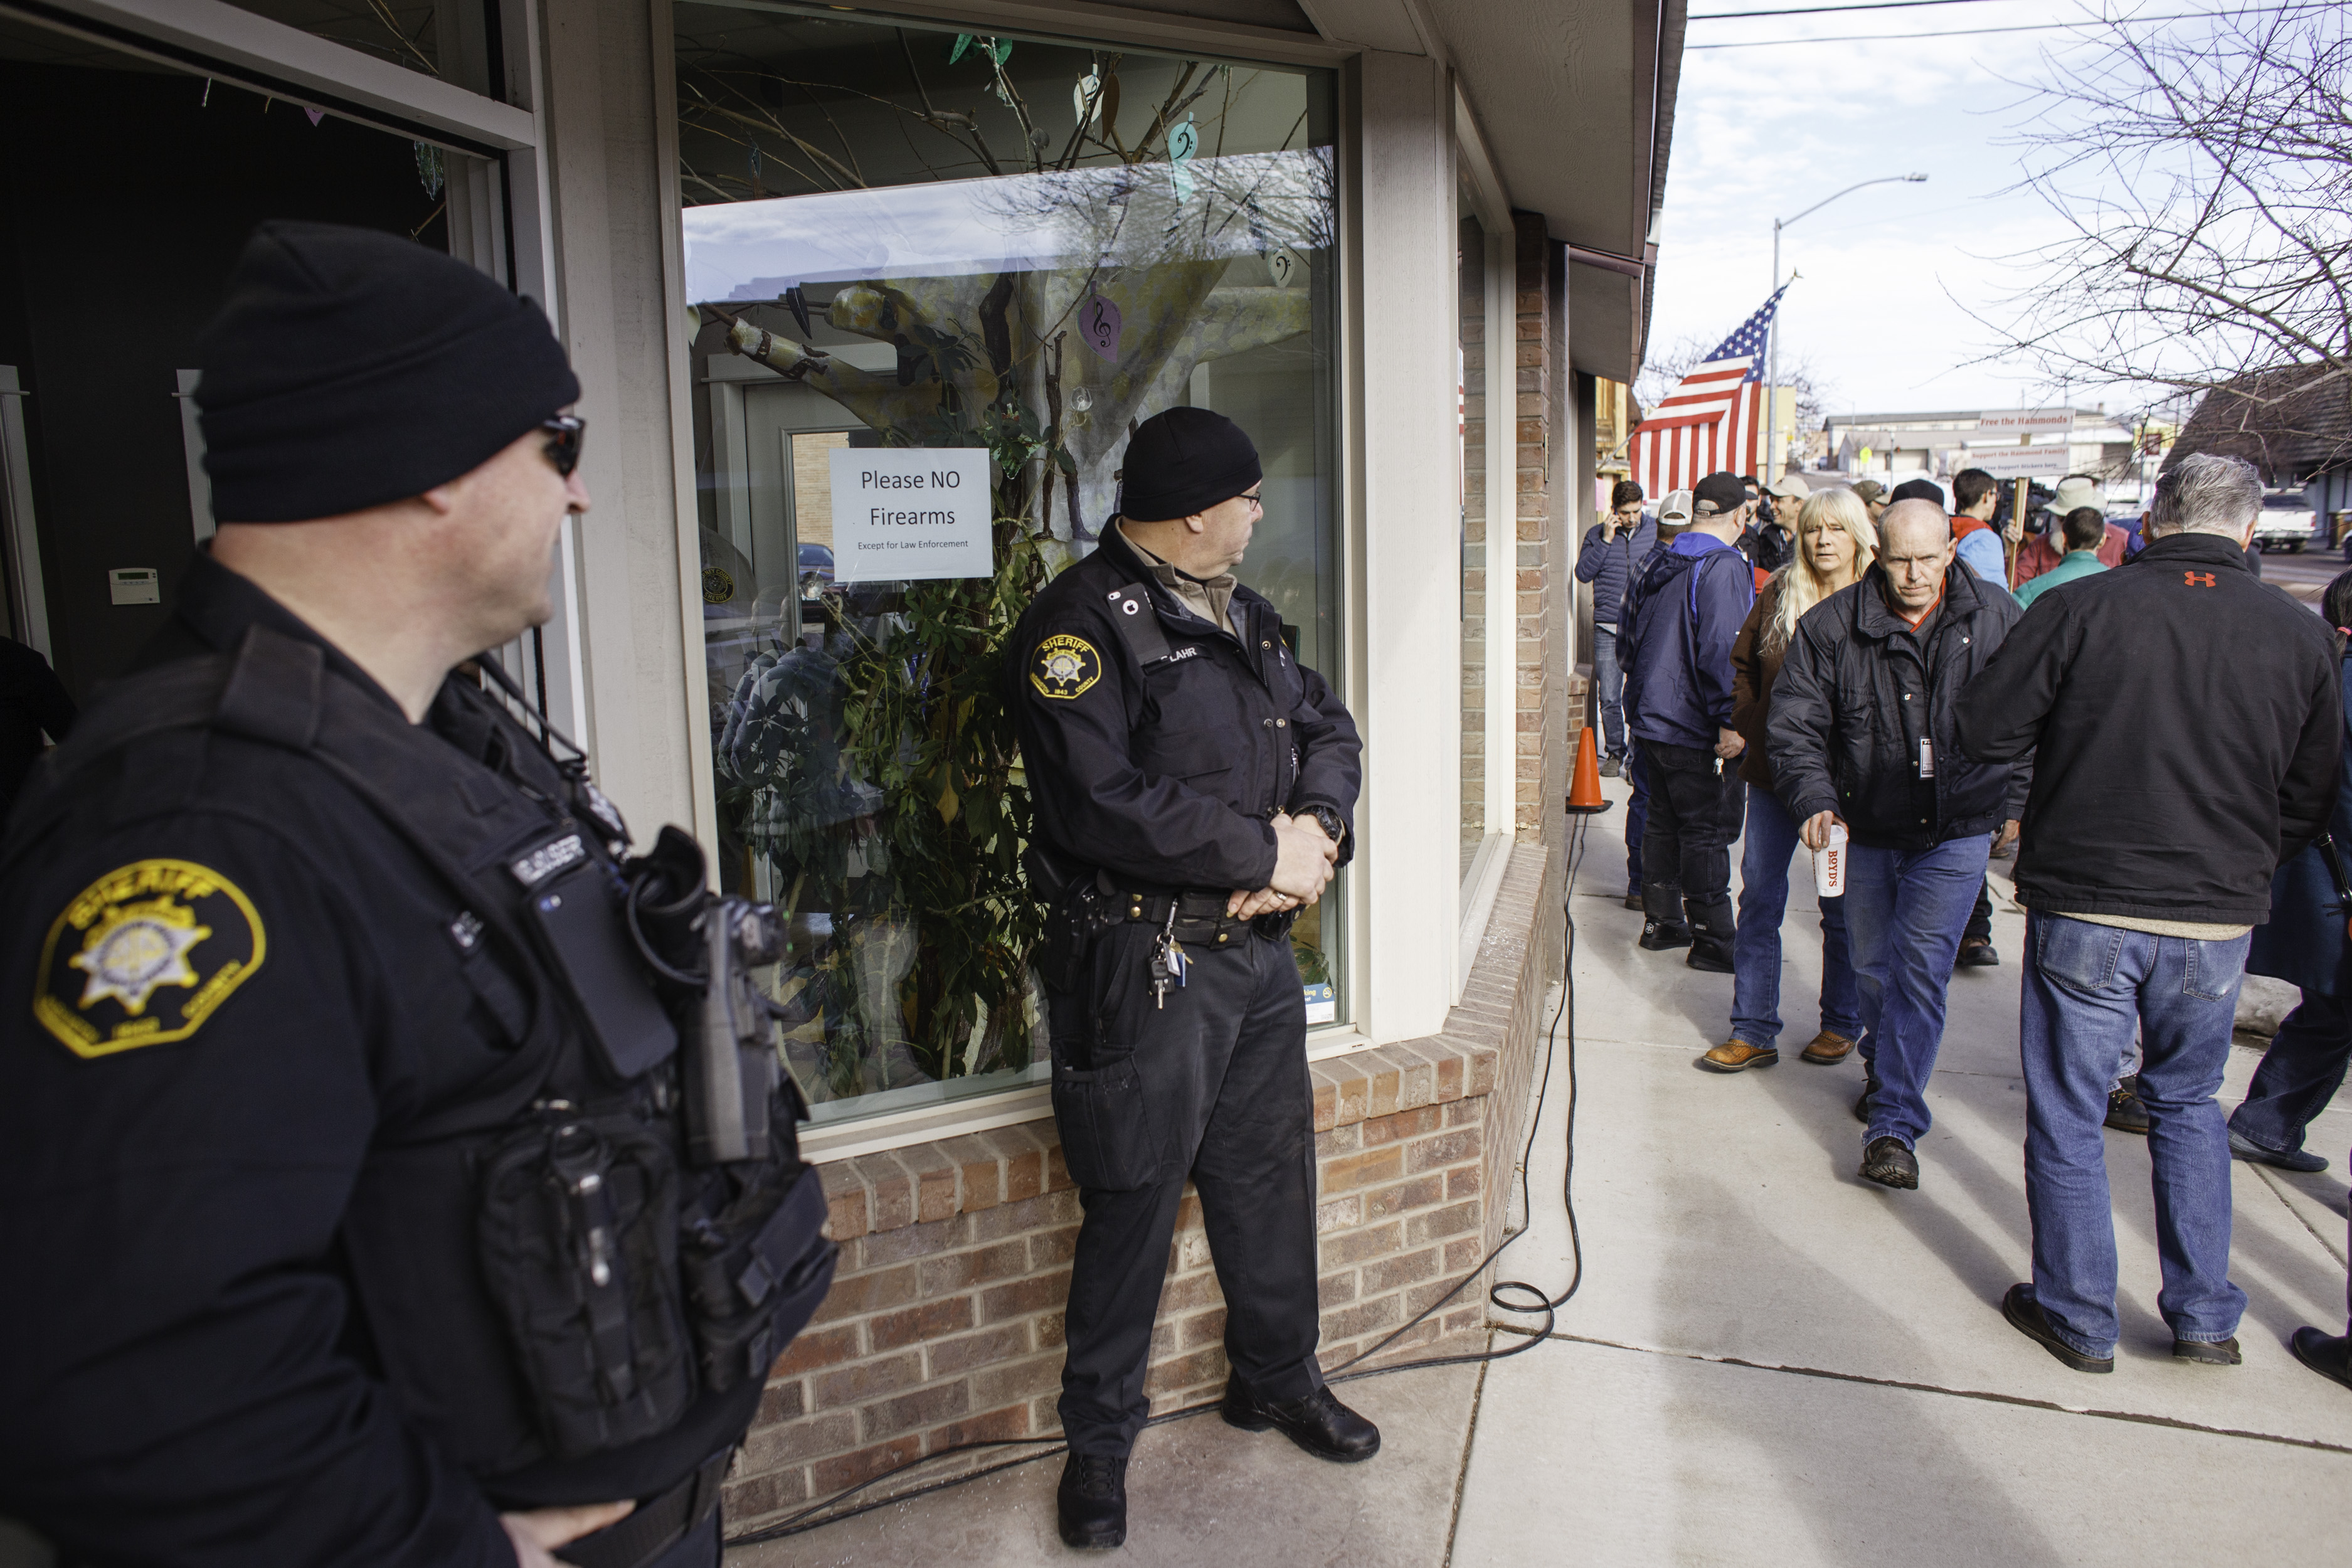 Washington County Sheriff Deputies monitor the public outside of the Harney County Chamber of Commerce where a press conference was being held in Burns, Oregon, on Jan. 27, 2016.